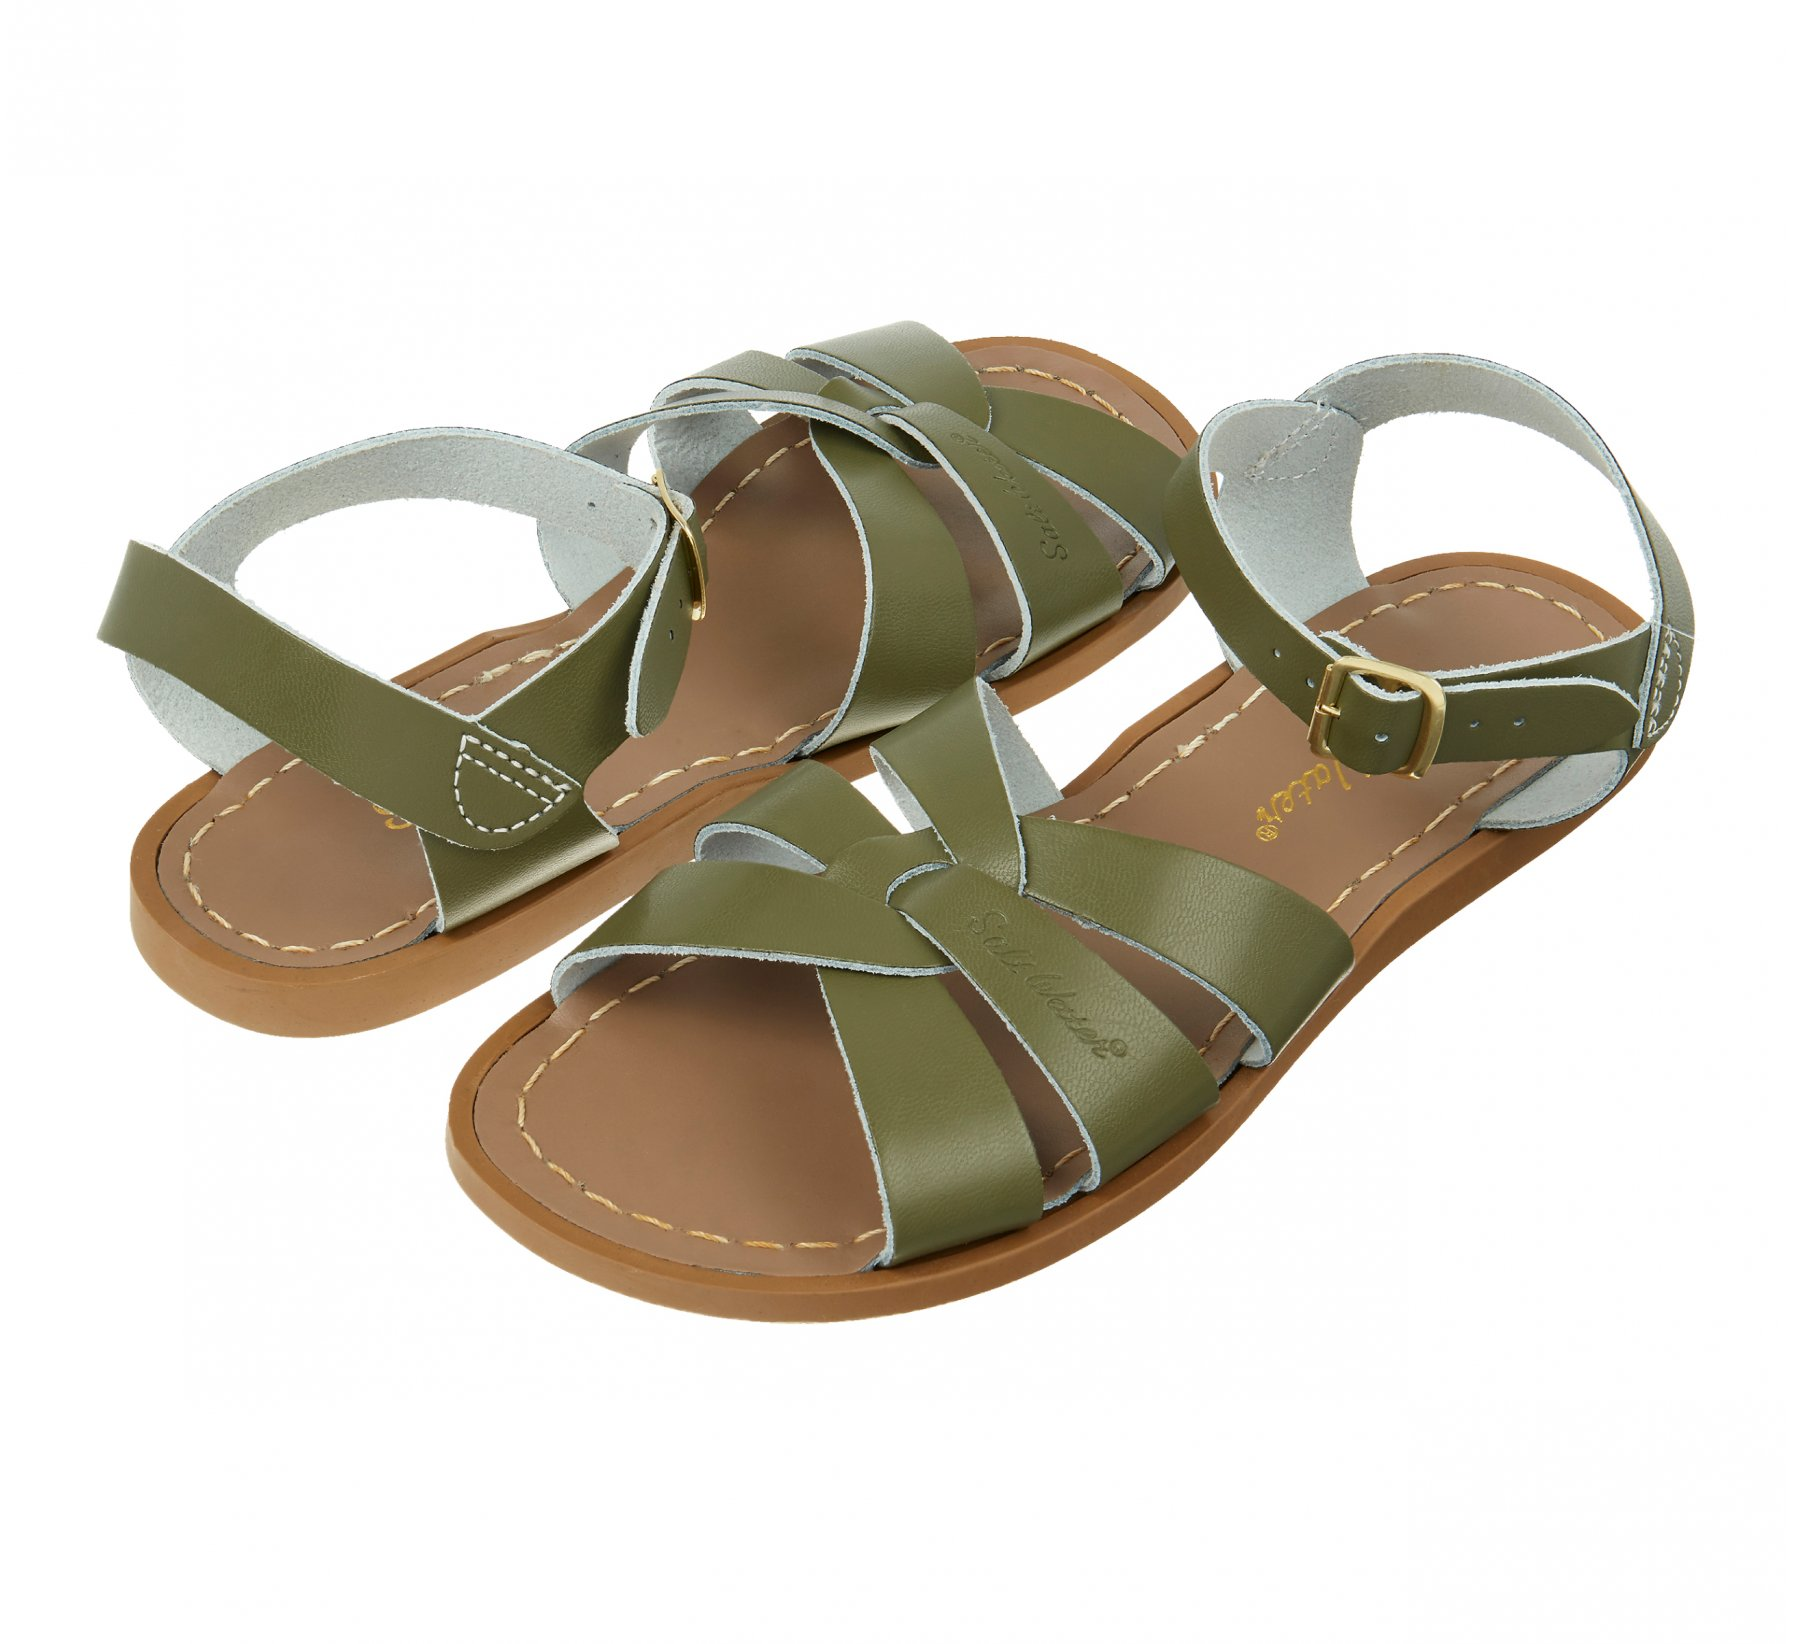 Original in Olivgrün - Salt Water Sandals